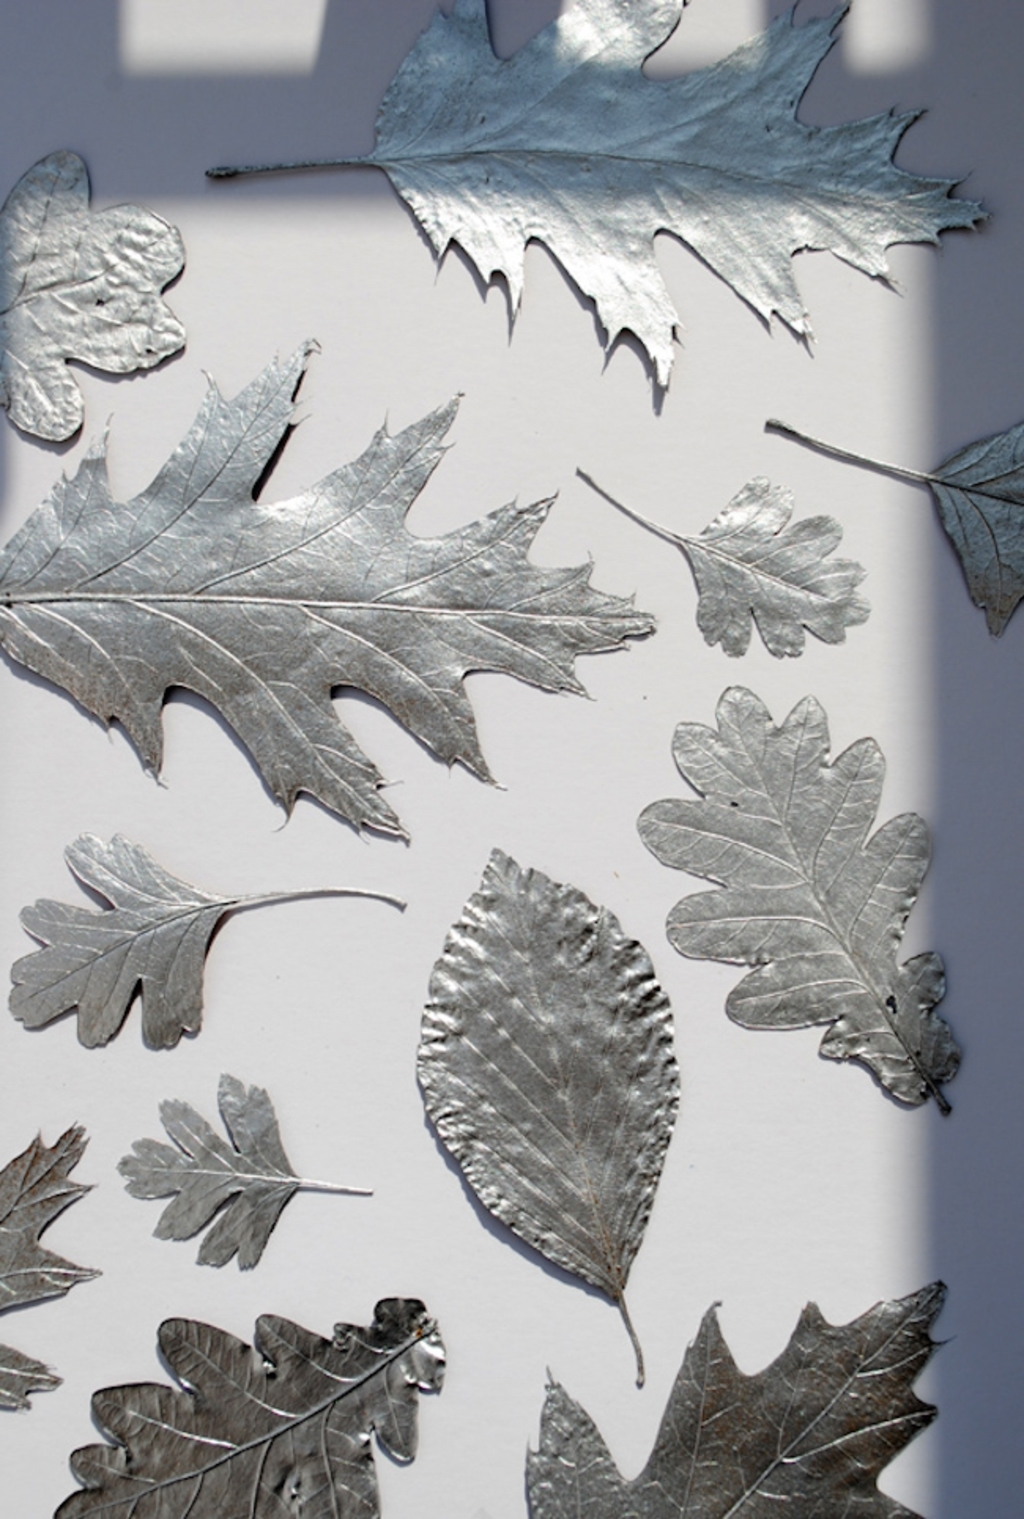 Diy Projects: Leaf Relief Craft To Use As Wall Art – 8 Creative Intended For Latest Seasonal Wall Art (View 14 of 15)